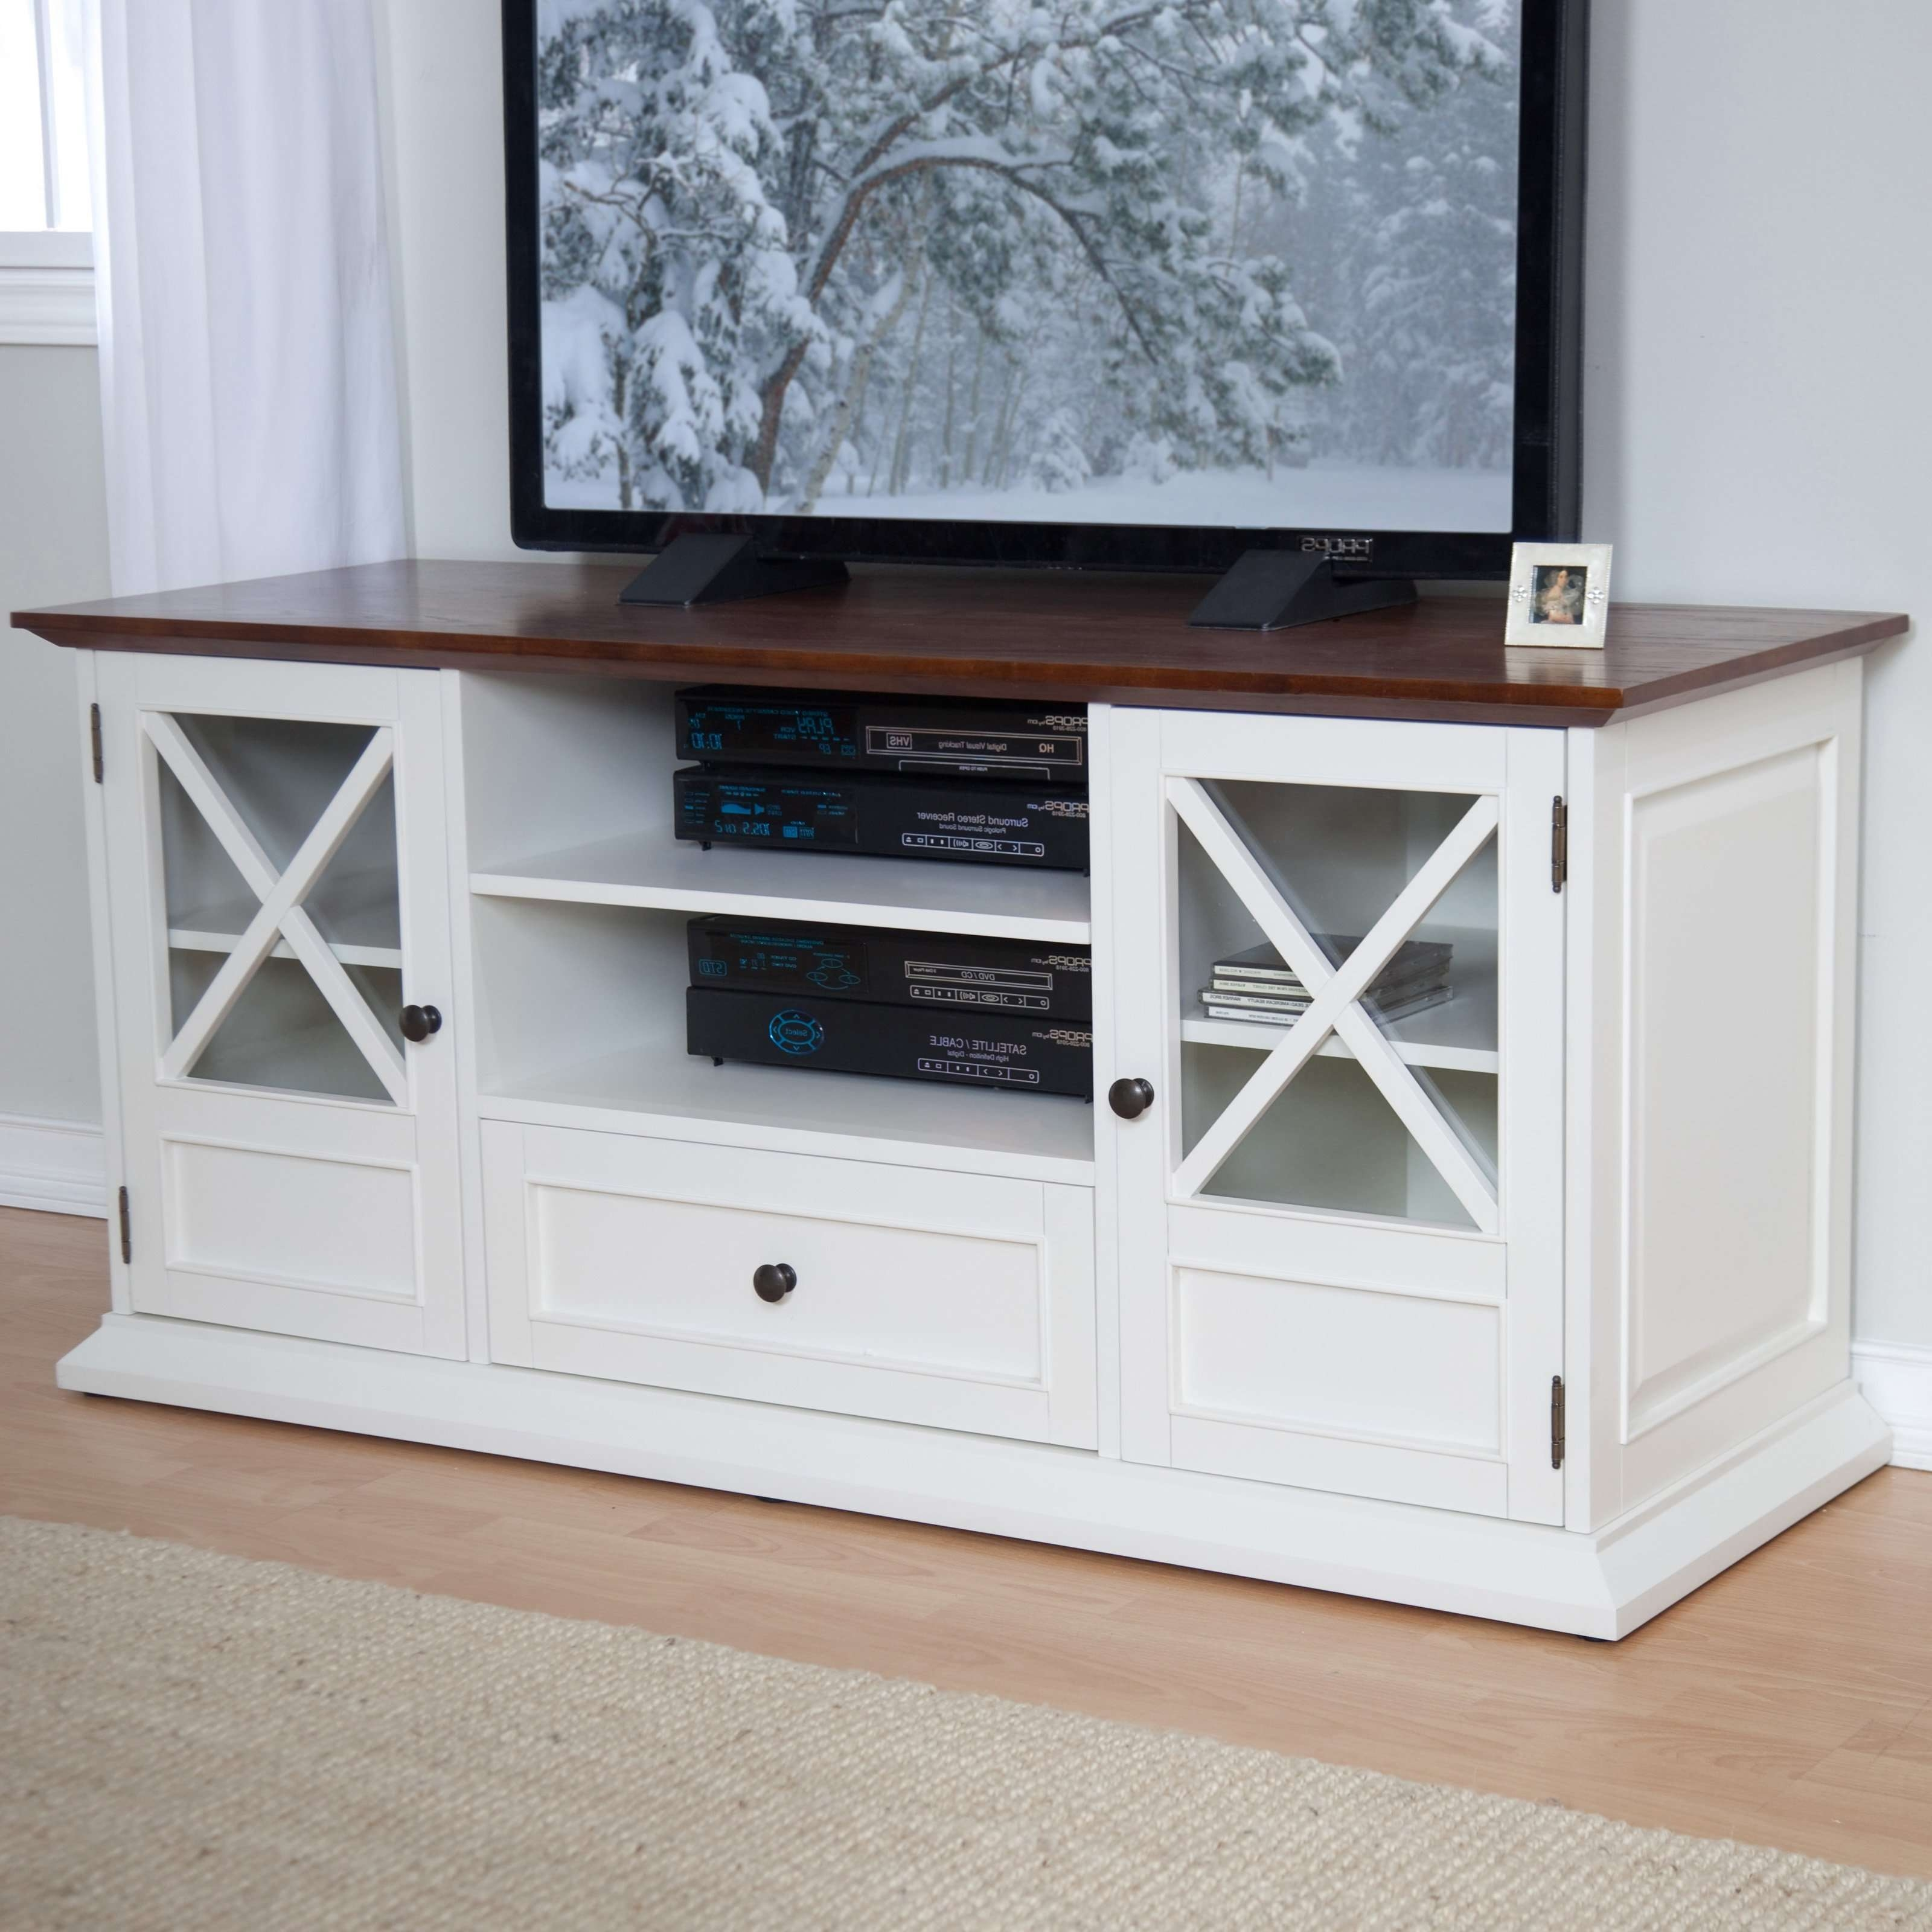 Belham Living Hampton Tv Stand – White/oak | Hayneedle With Regard To Long White Tv Cabinets (View 5 of 20)